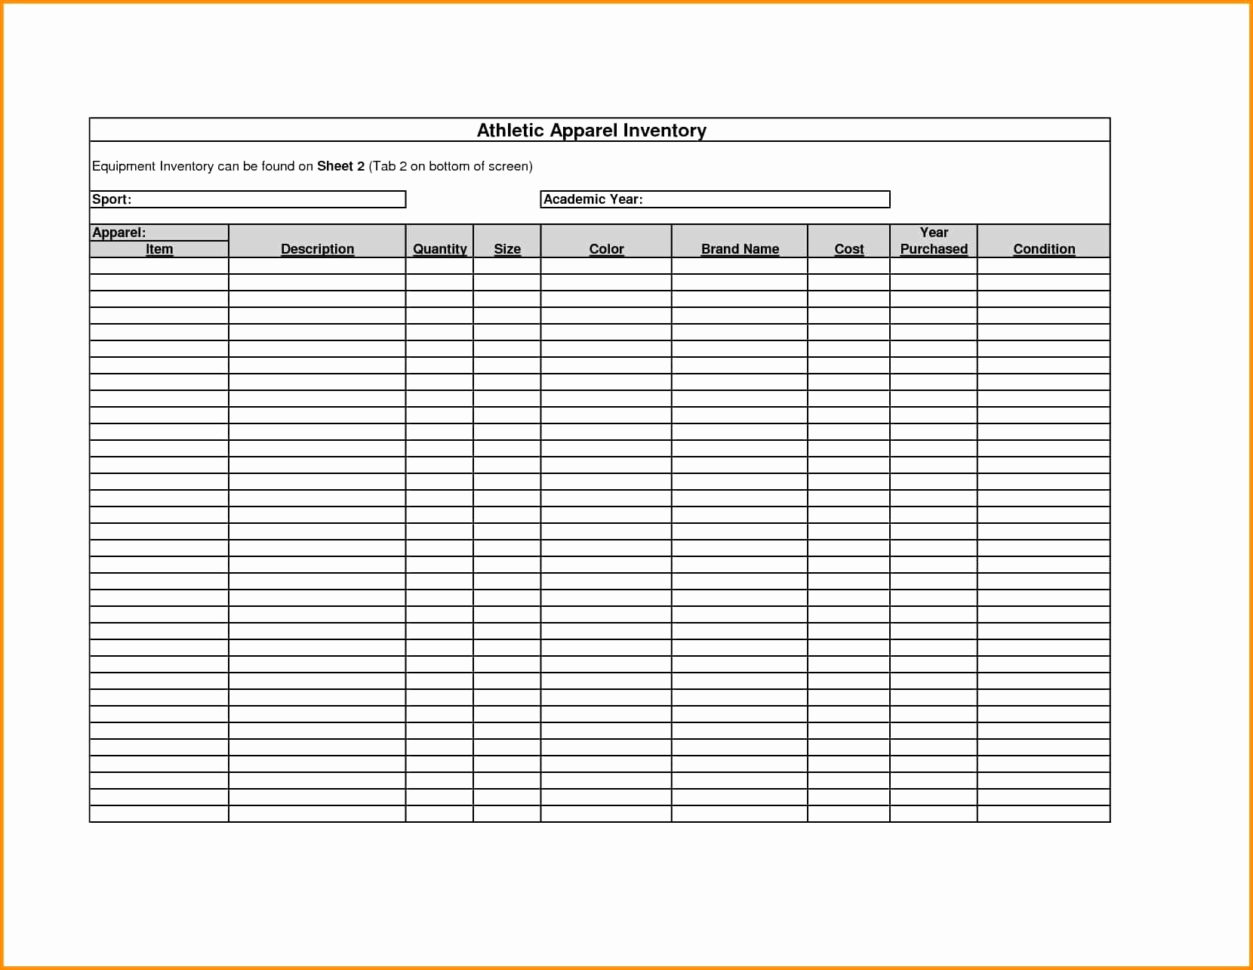 Inventory Management In Excel Free Download Fresh Inventory To Stock Management Excel Sheet Download